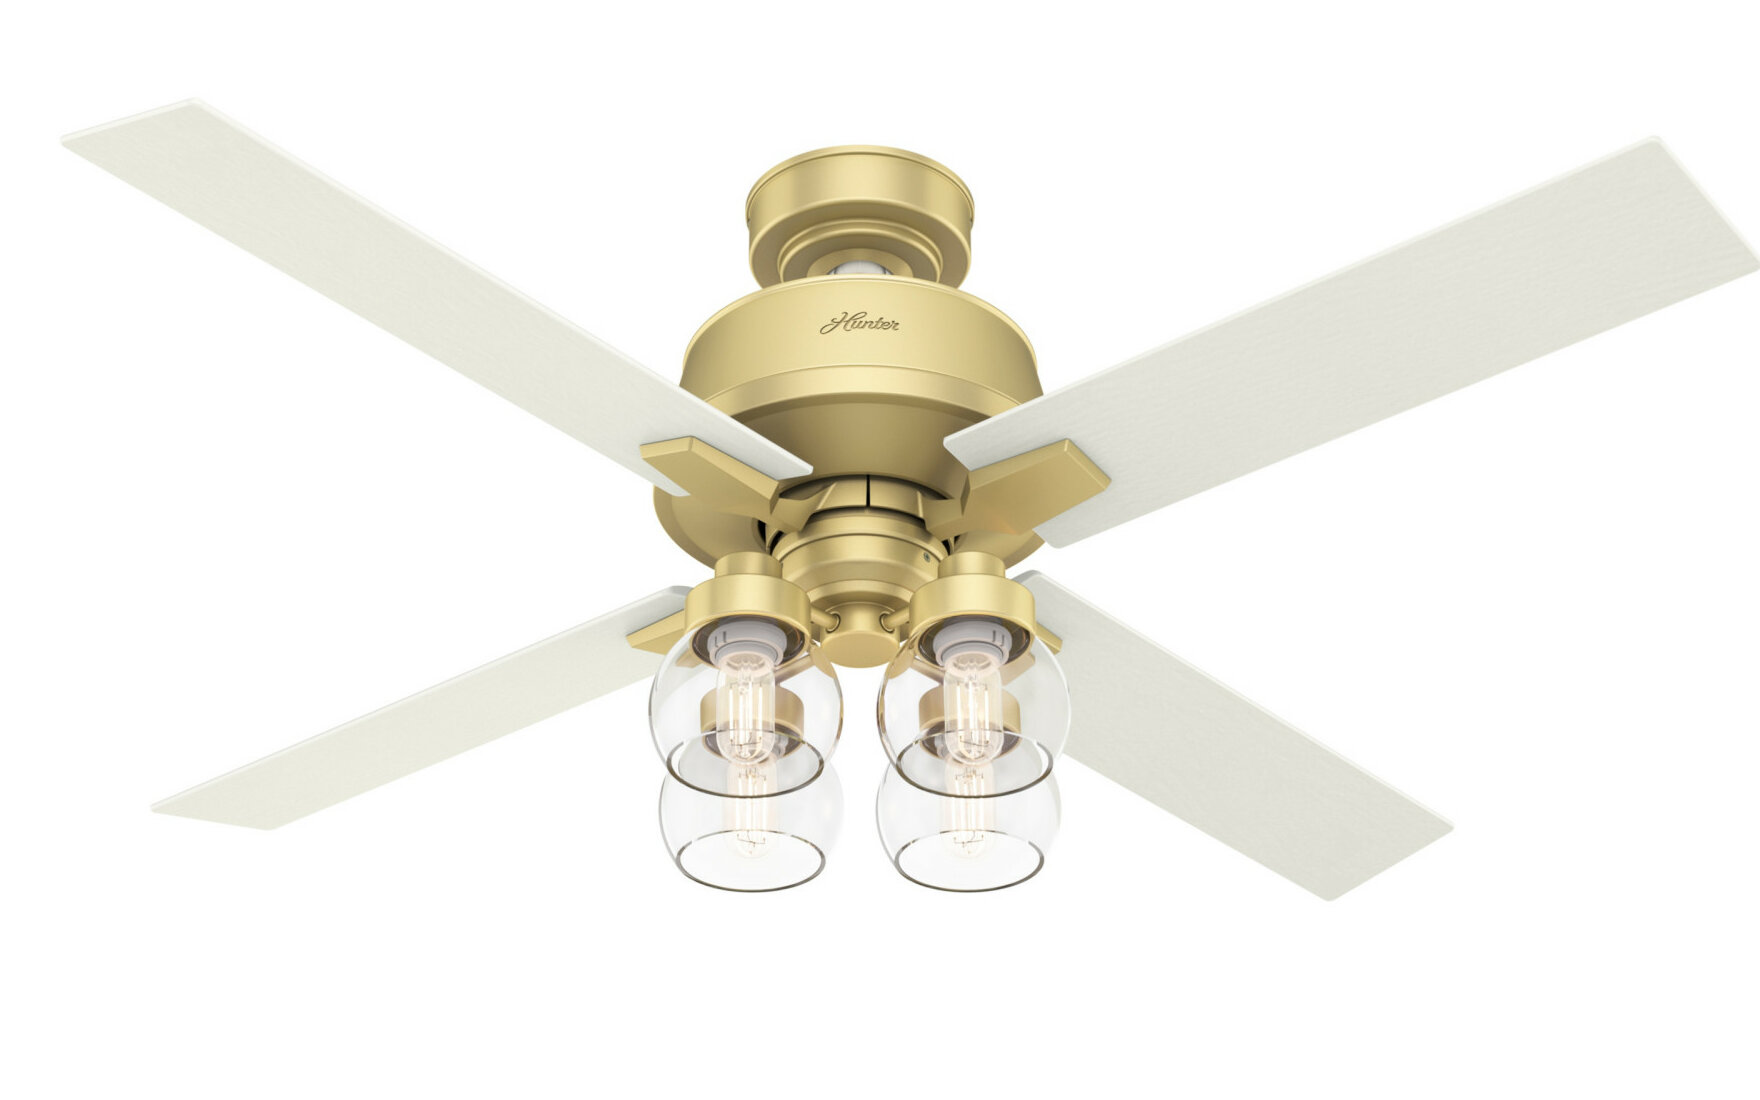 Hunter Fan 52 Vivien 4 Blade Standard Ceiling Fan With Remote Control And Light Kit Included Reviews Wayfair